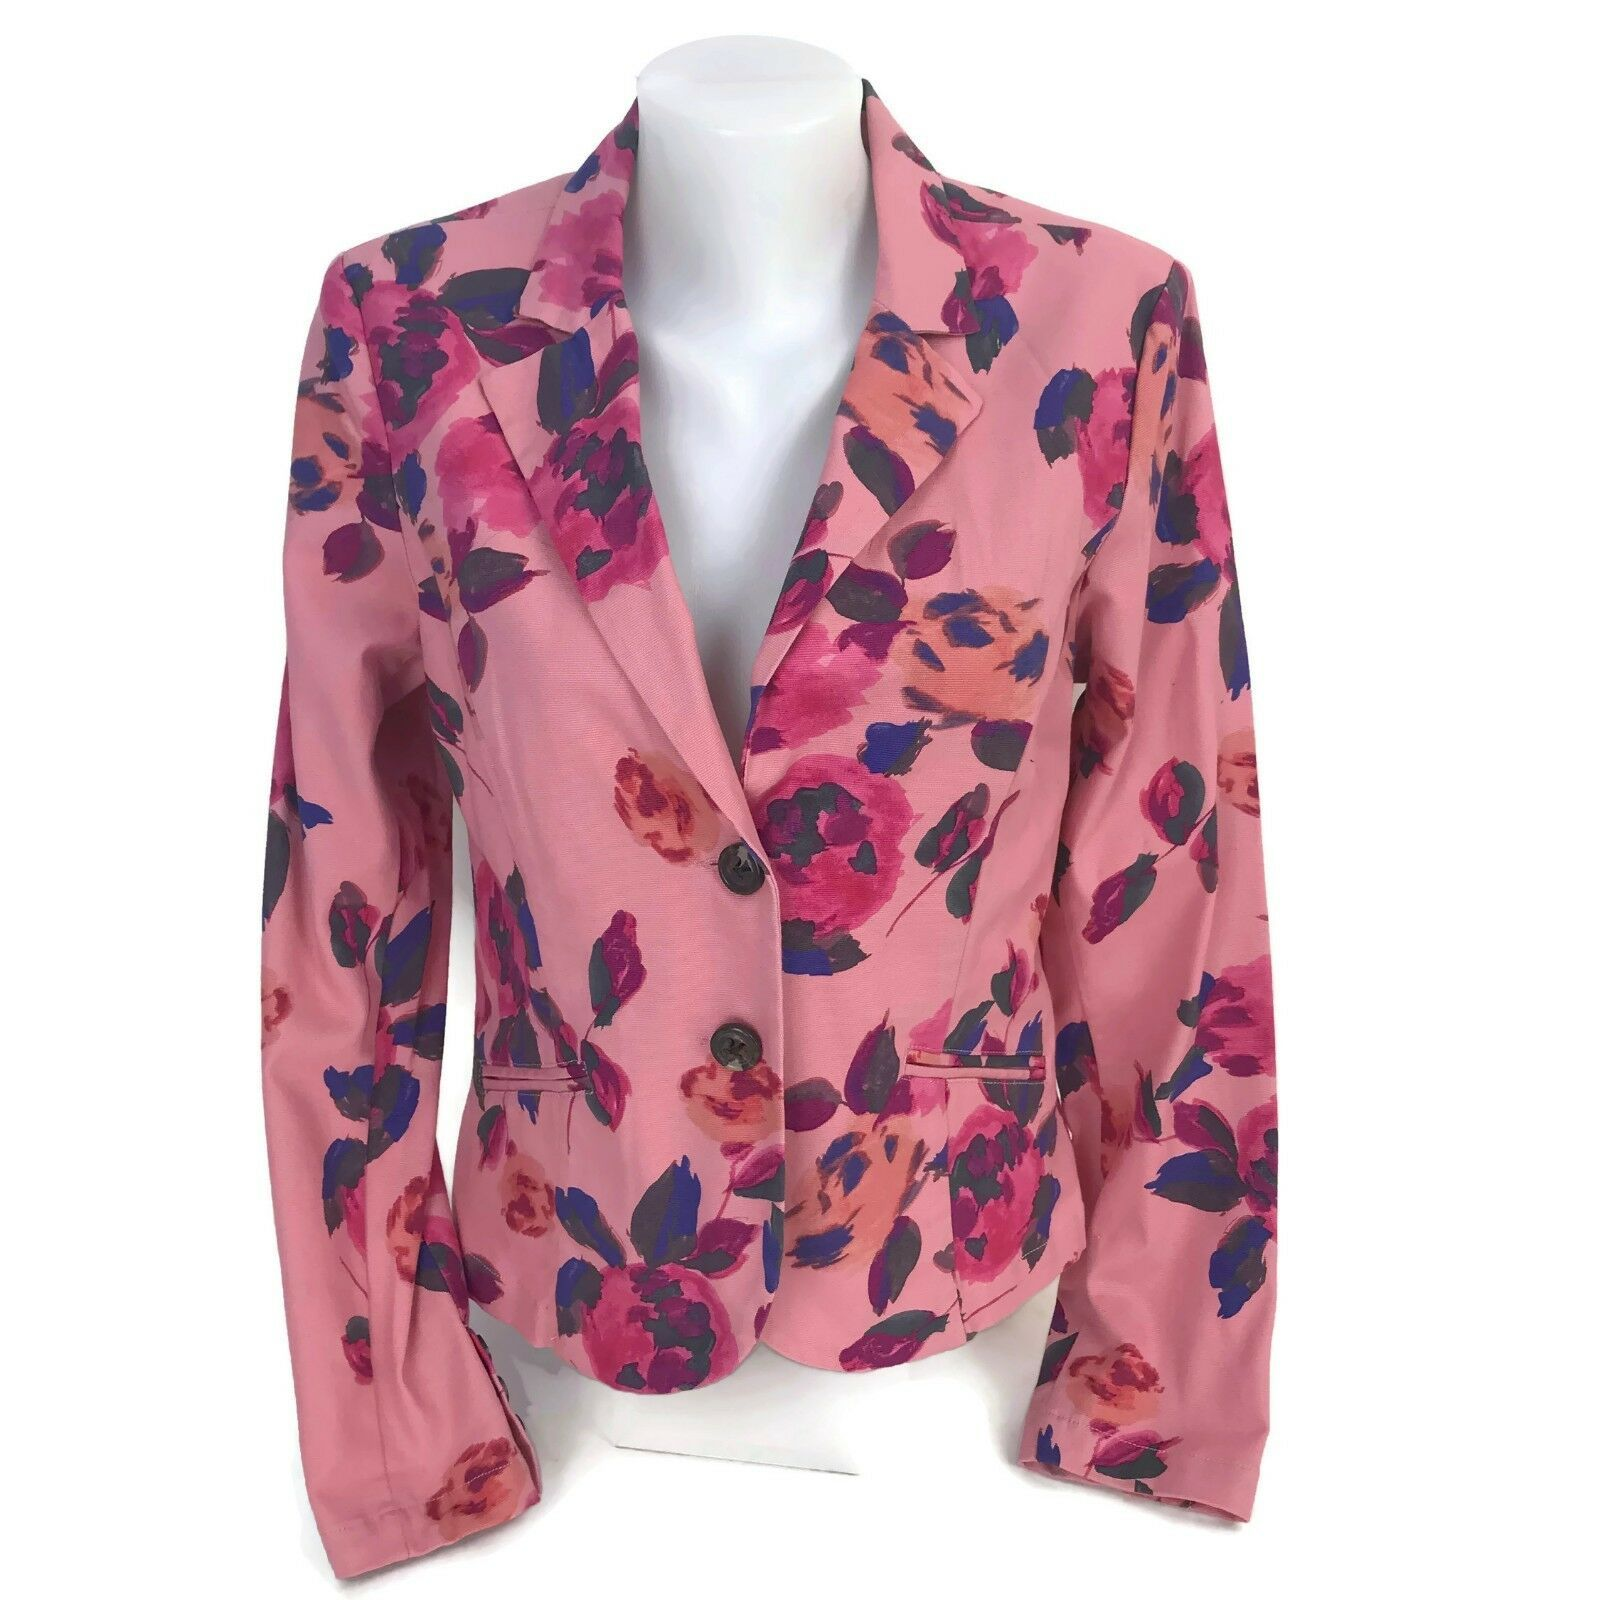 Primary image for CAbi Women's Rose Garden Jacket Pink Floral Cotton Stretch Blazer # 804 Size 8